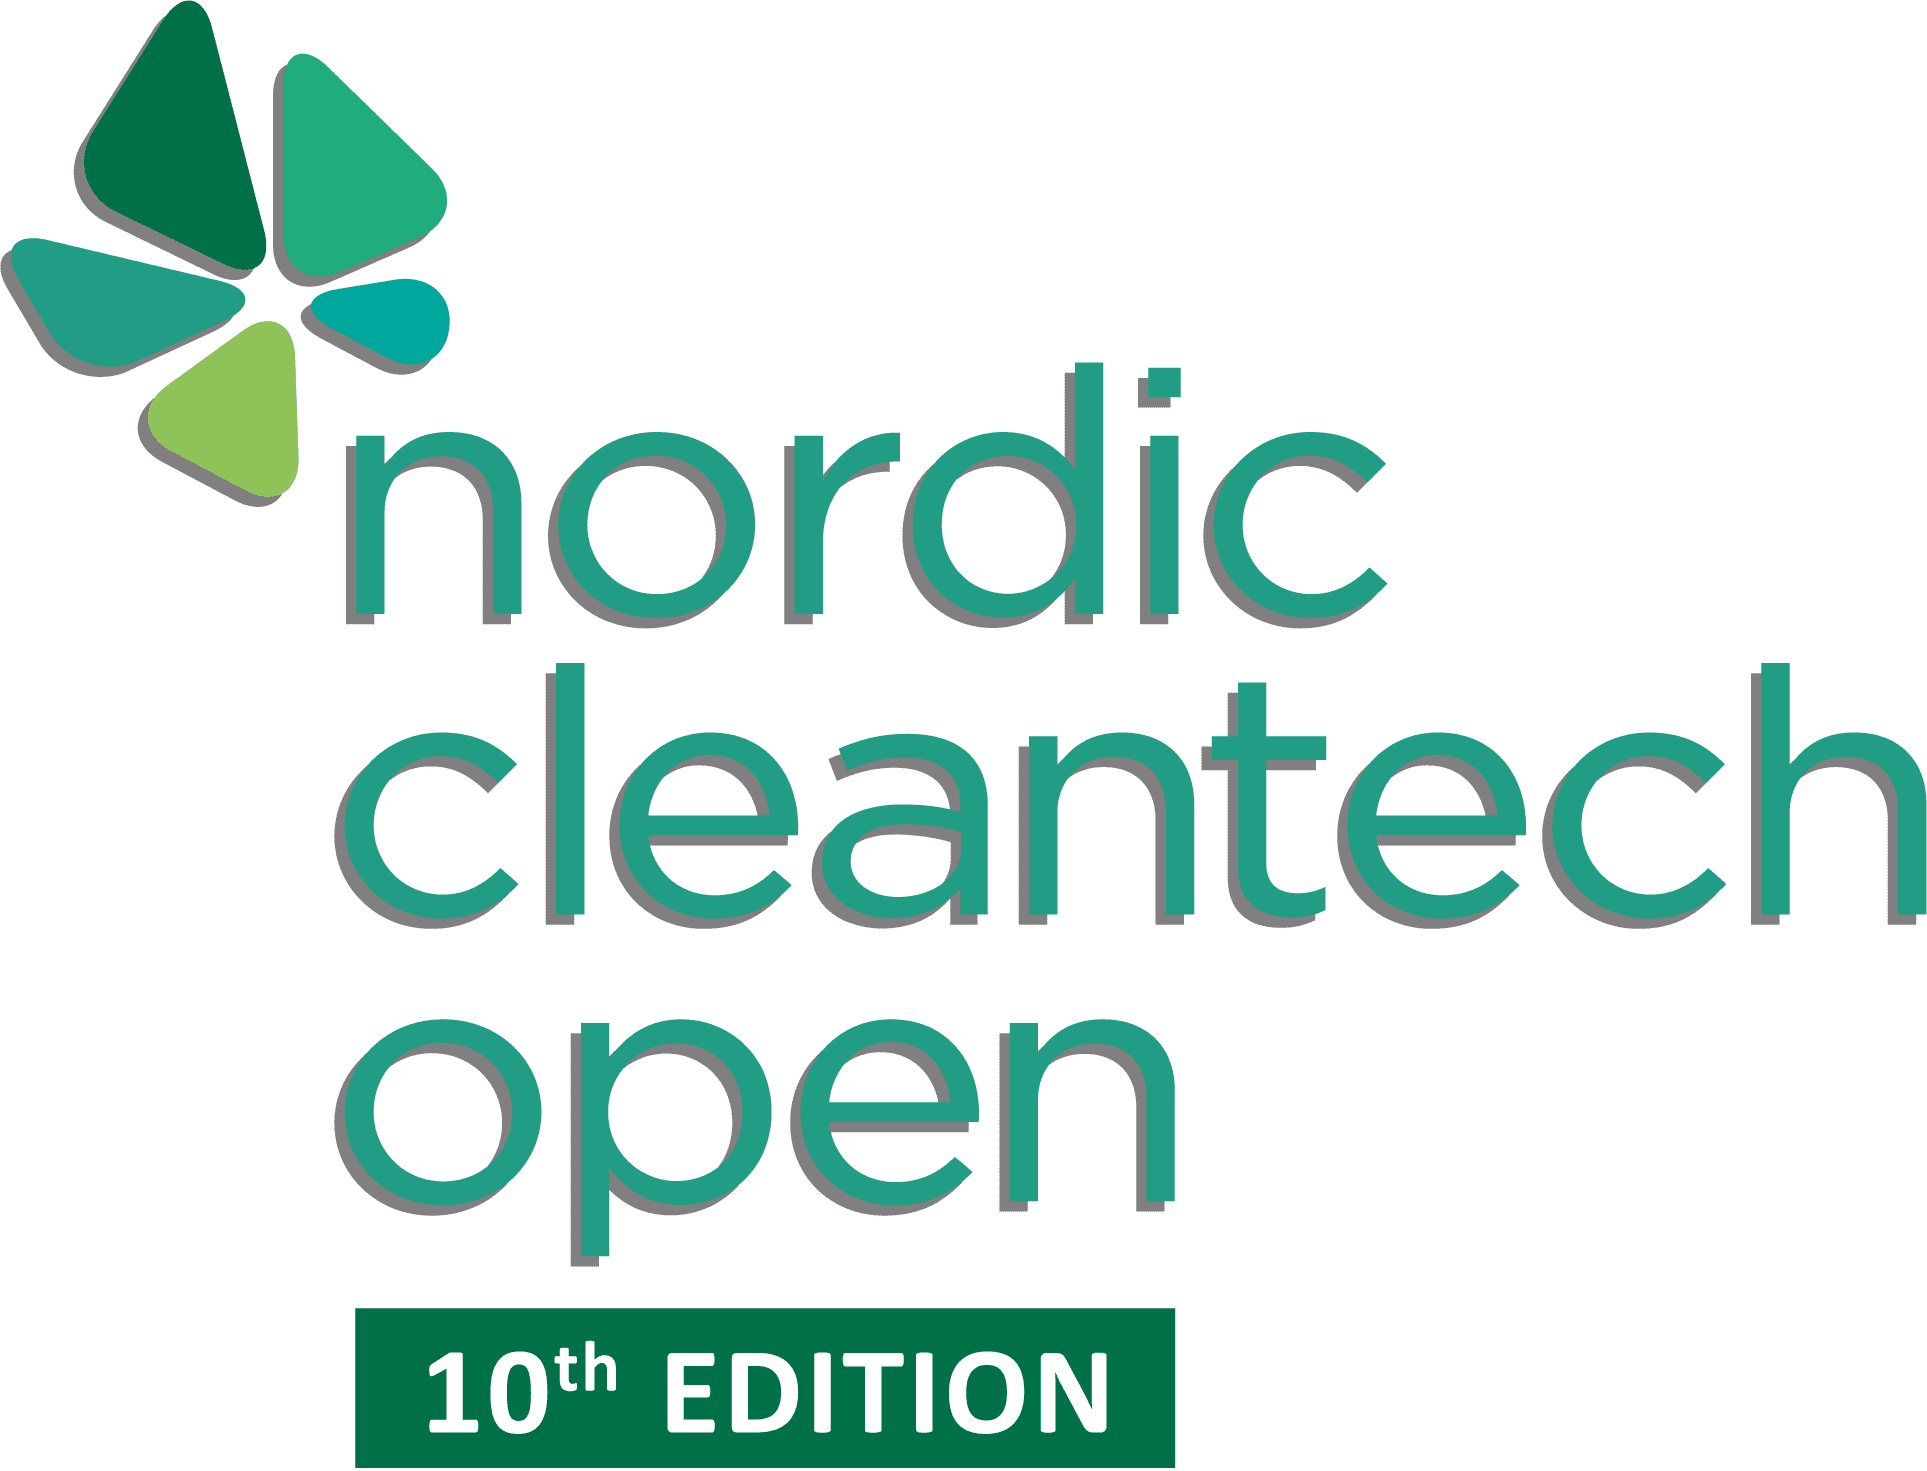 Nordic Cleantech Open - 10th Edition